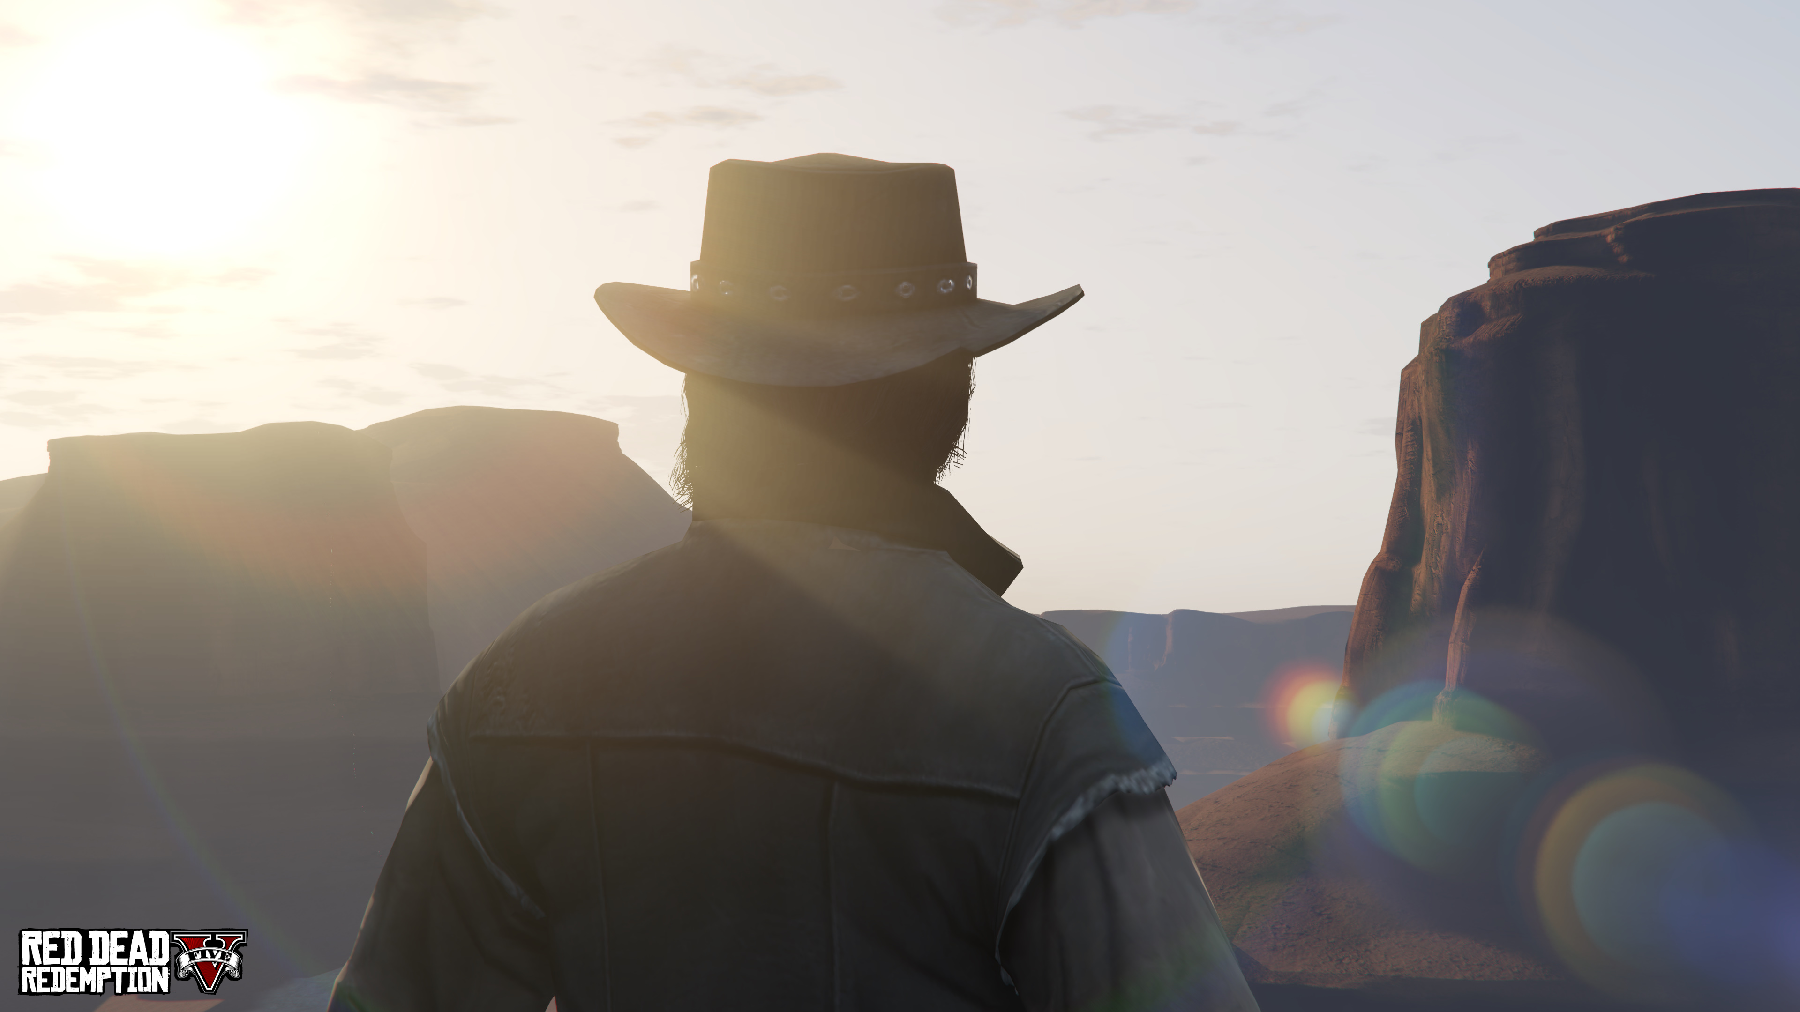 Mod To Put Red Dead Redemption Map Inside GTA V Gets Canceled